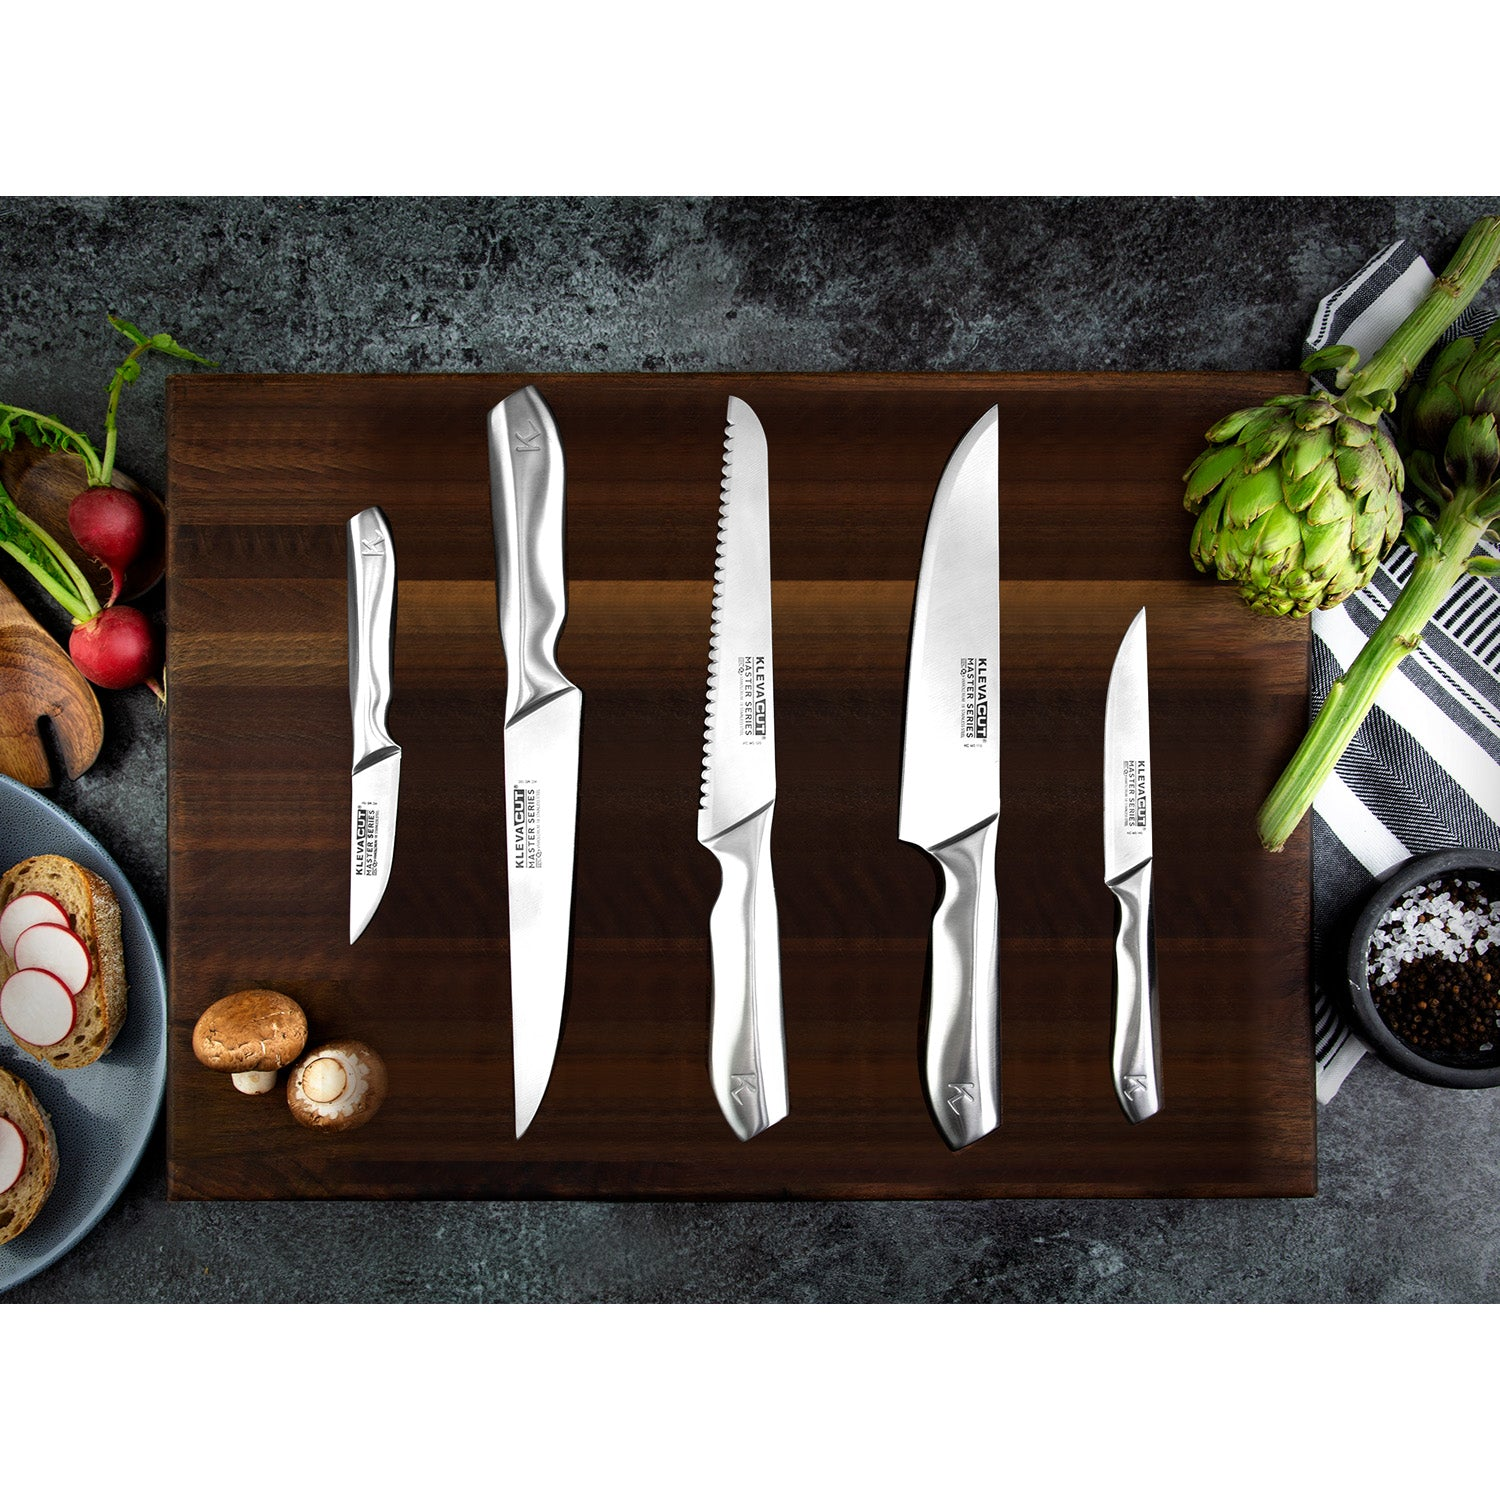 5 Piece Professional KlevaCut® Master Series on a cutting board